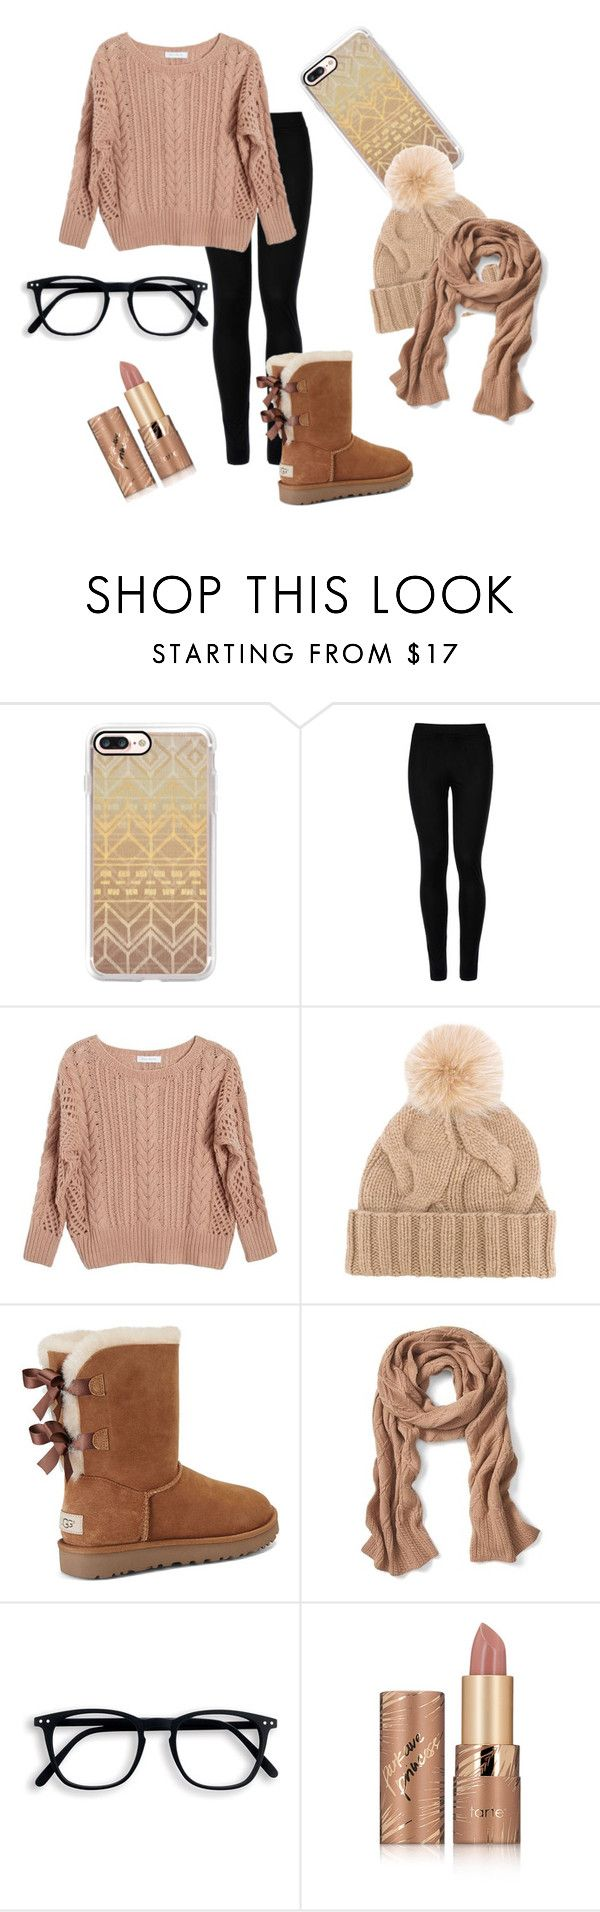 """""""Fall"""" by electraz on Polyvore featuring Casetify, Wolford, Ryan Roche, Loro Piana, UGG, Banana Republic and tarte"""